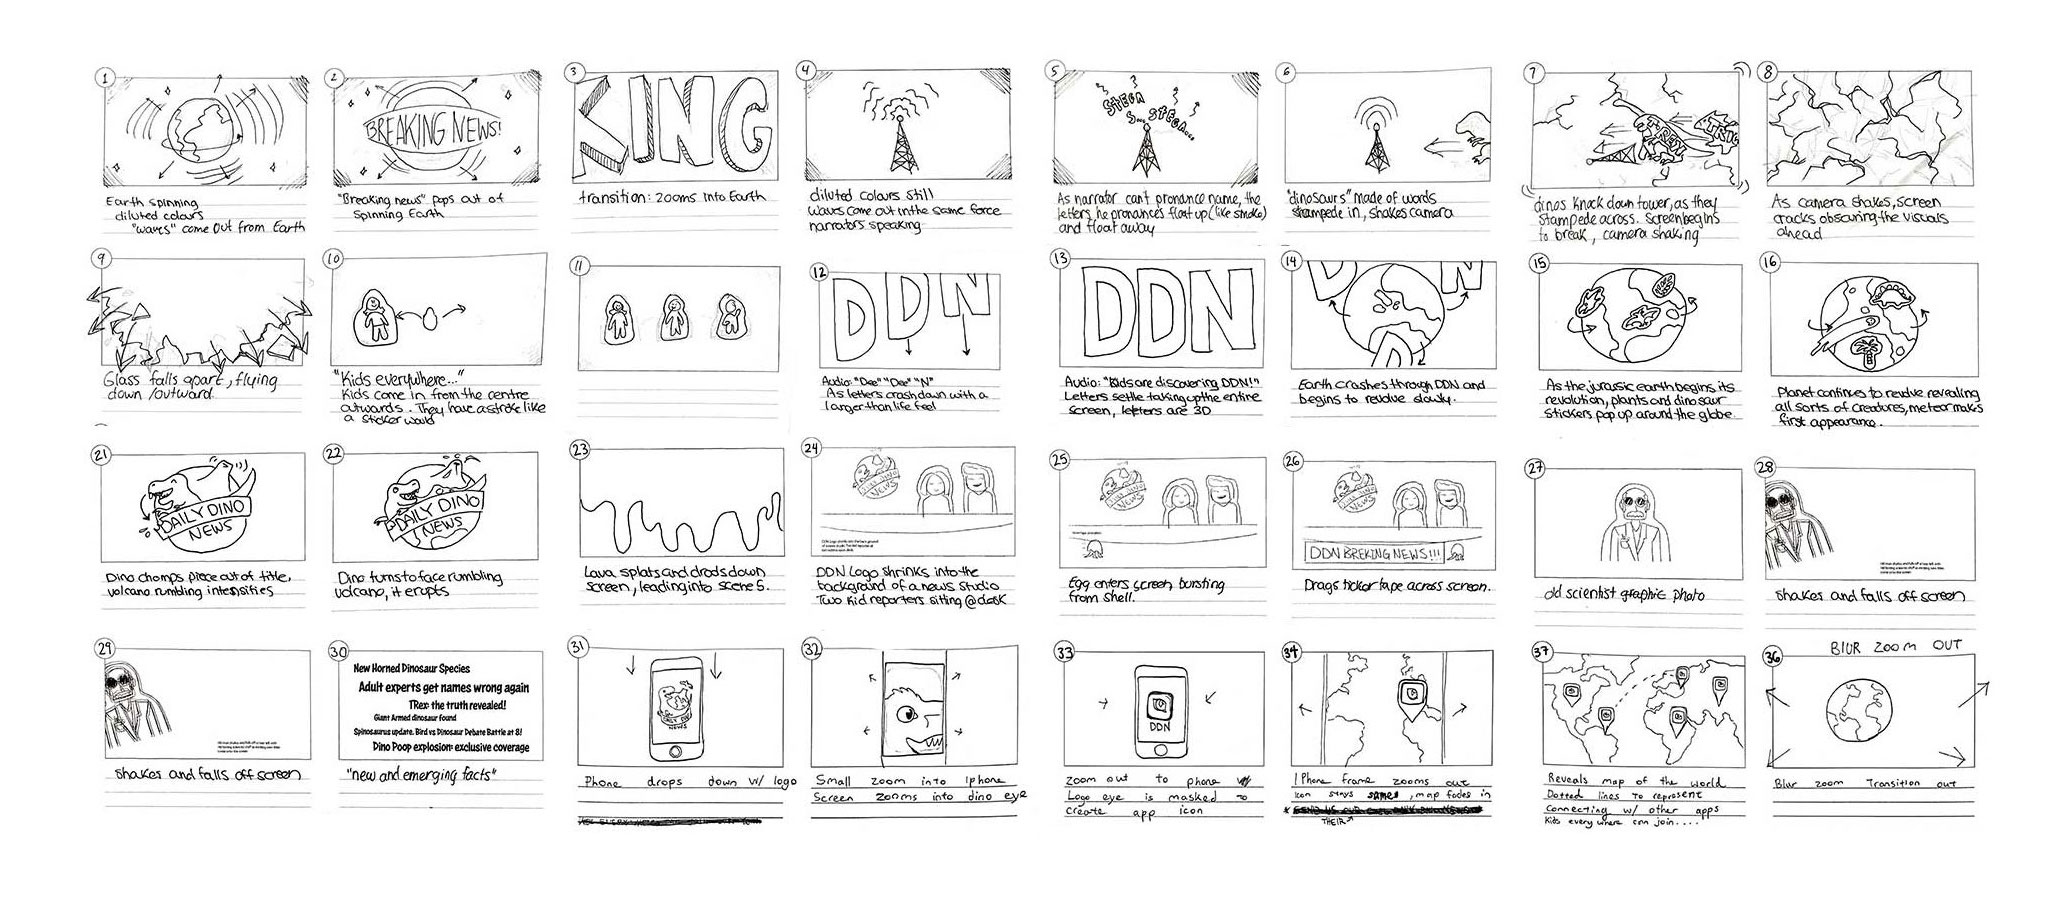 storyboarding for daily dino news video pitch trailer